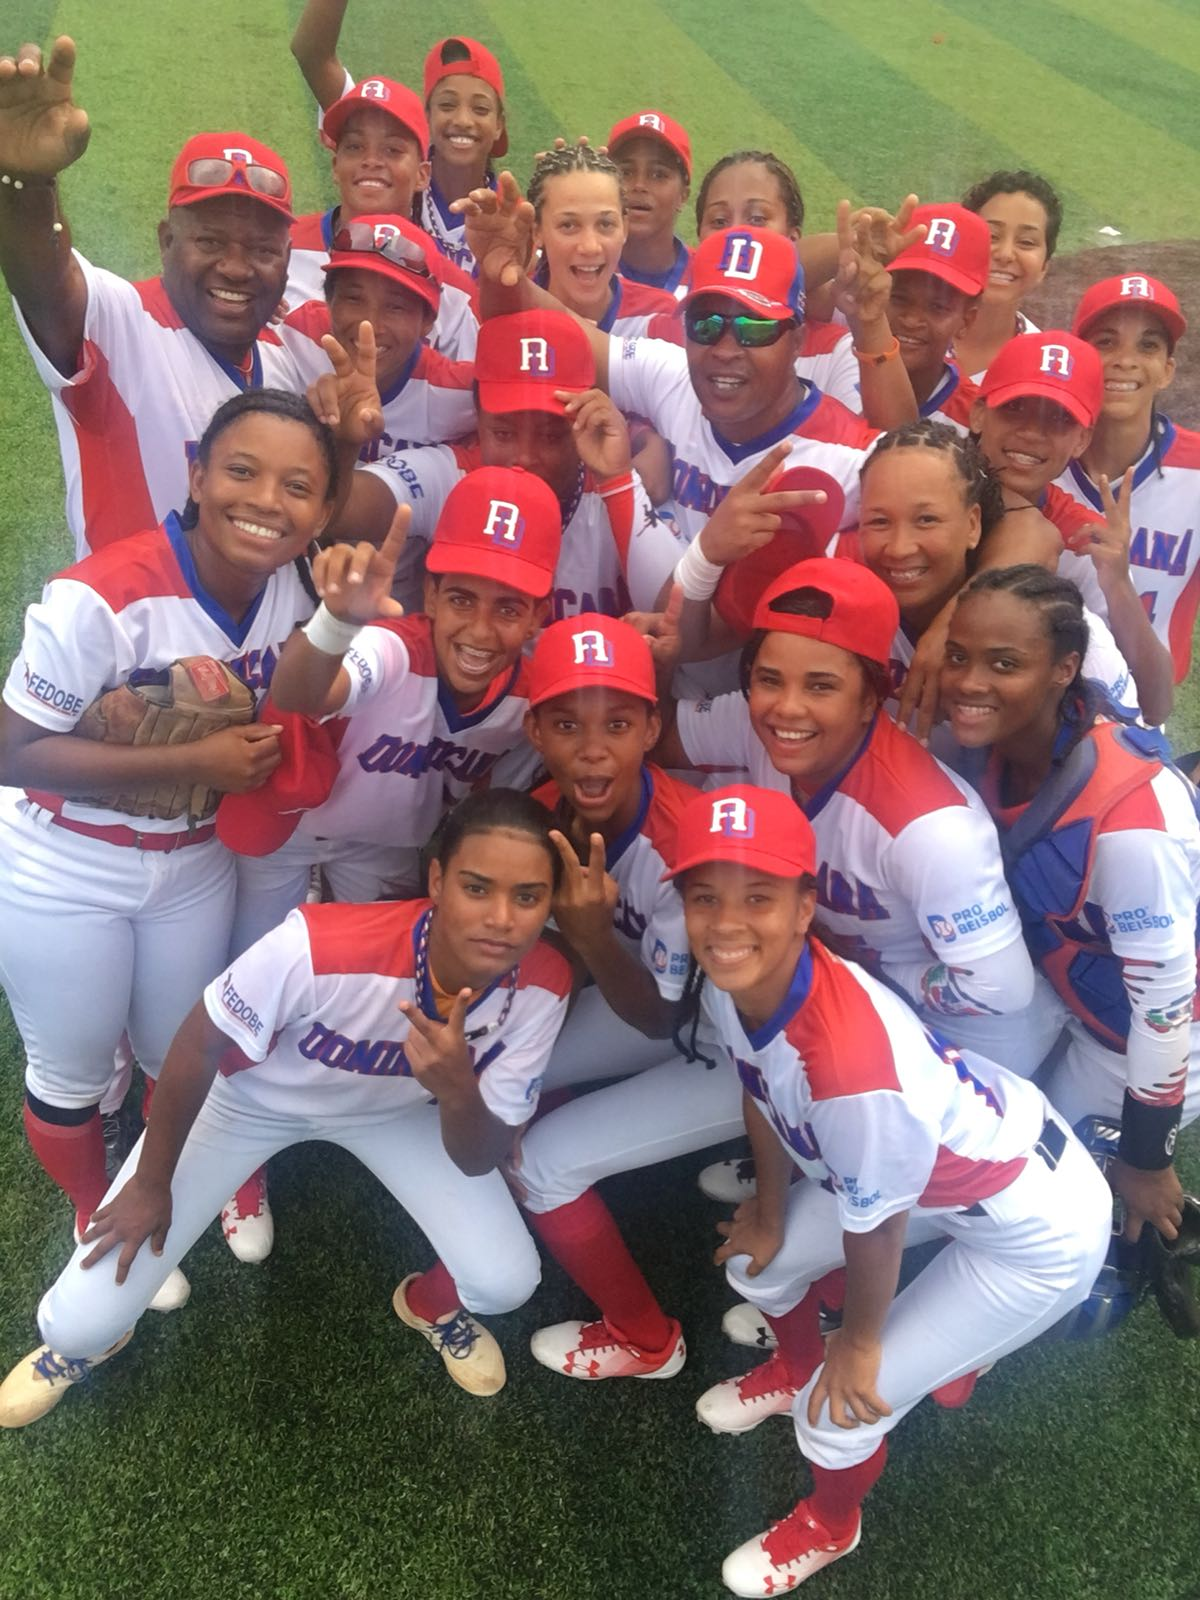 Dominican Republic celebrates the first ever win in Women's Baseball on the world stage